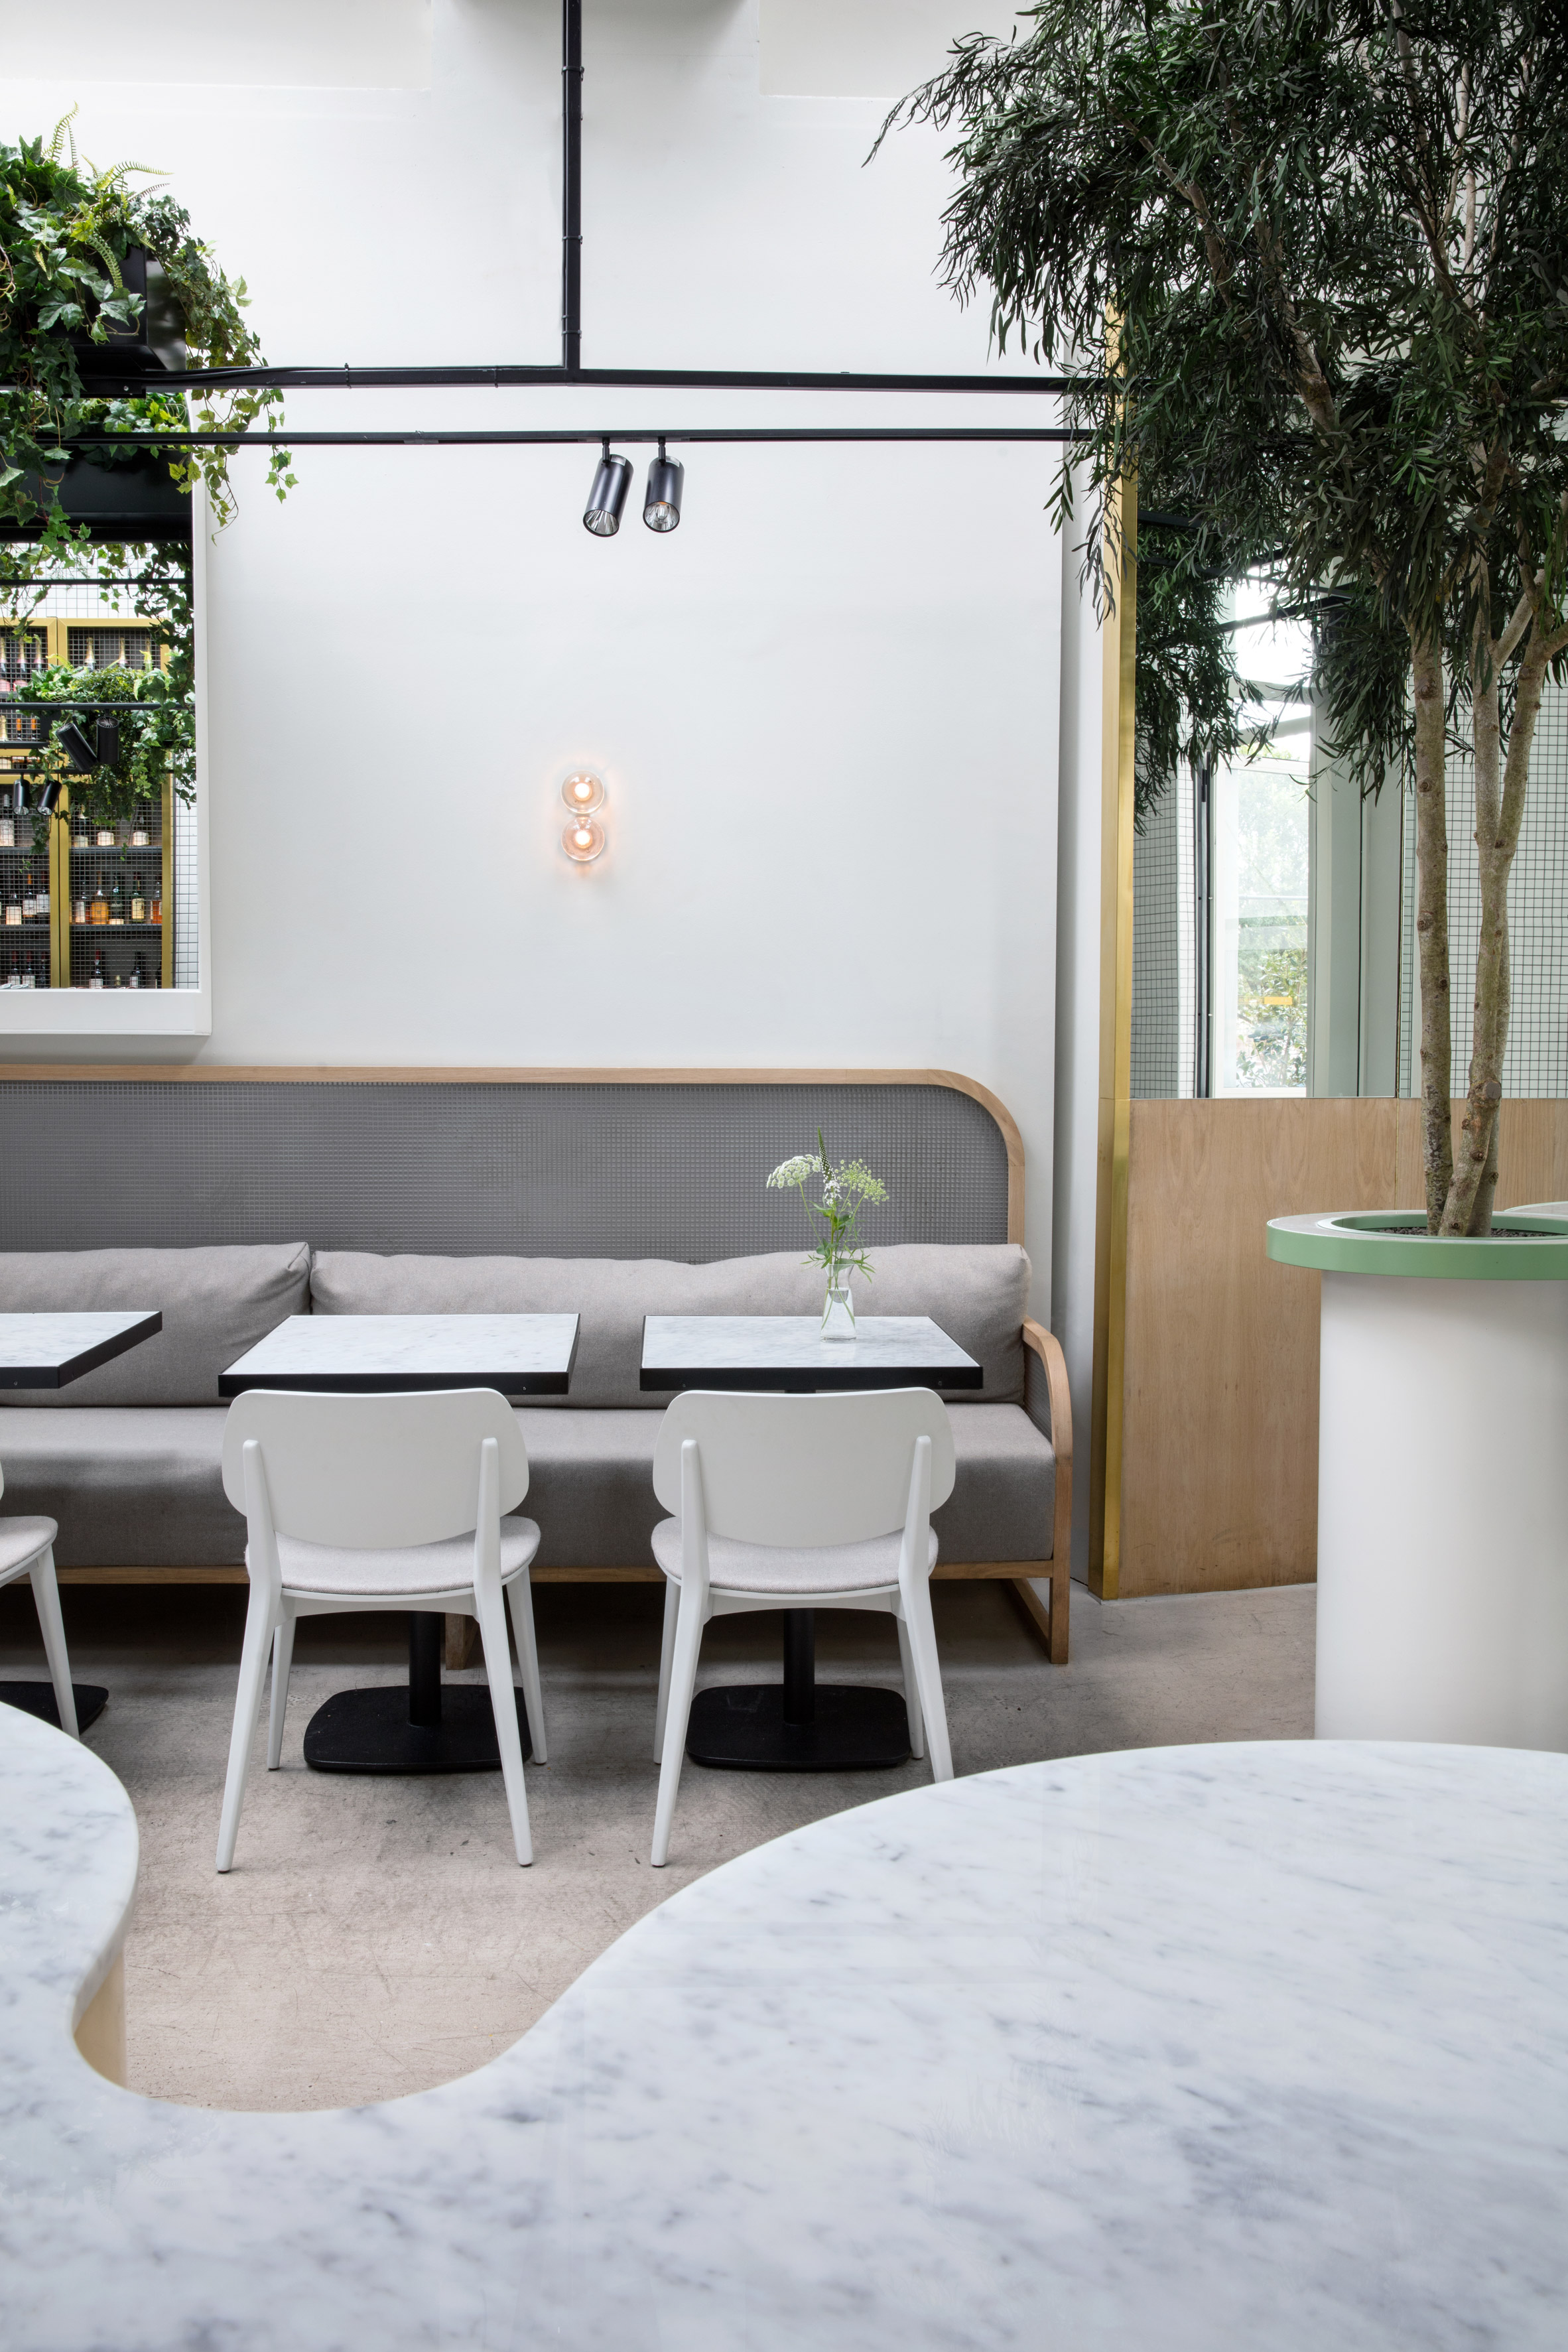 Stella Collective insert a tropical canopy into a Brighton cafe